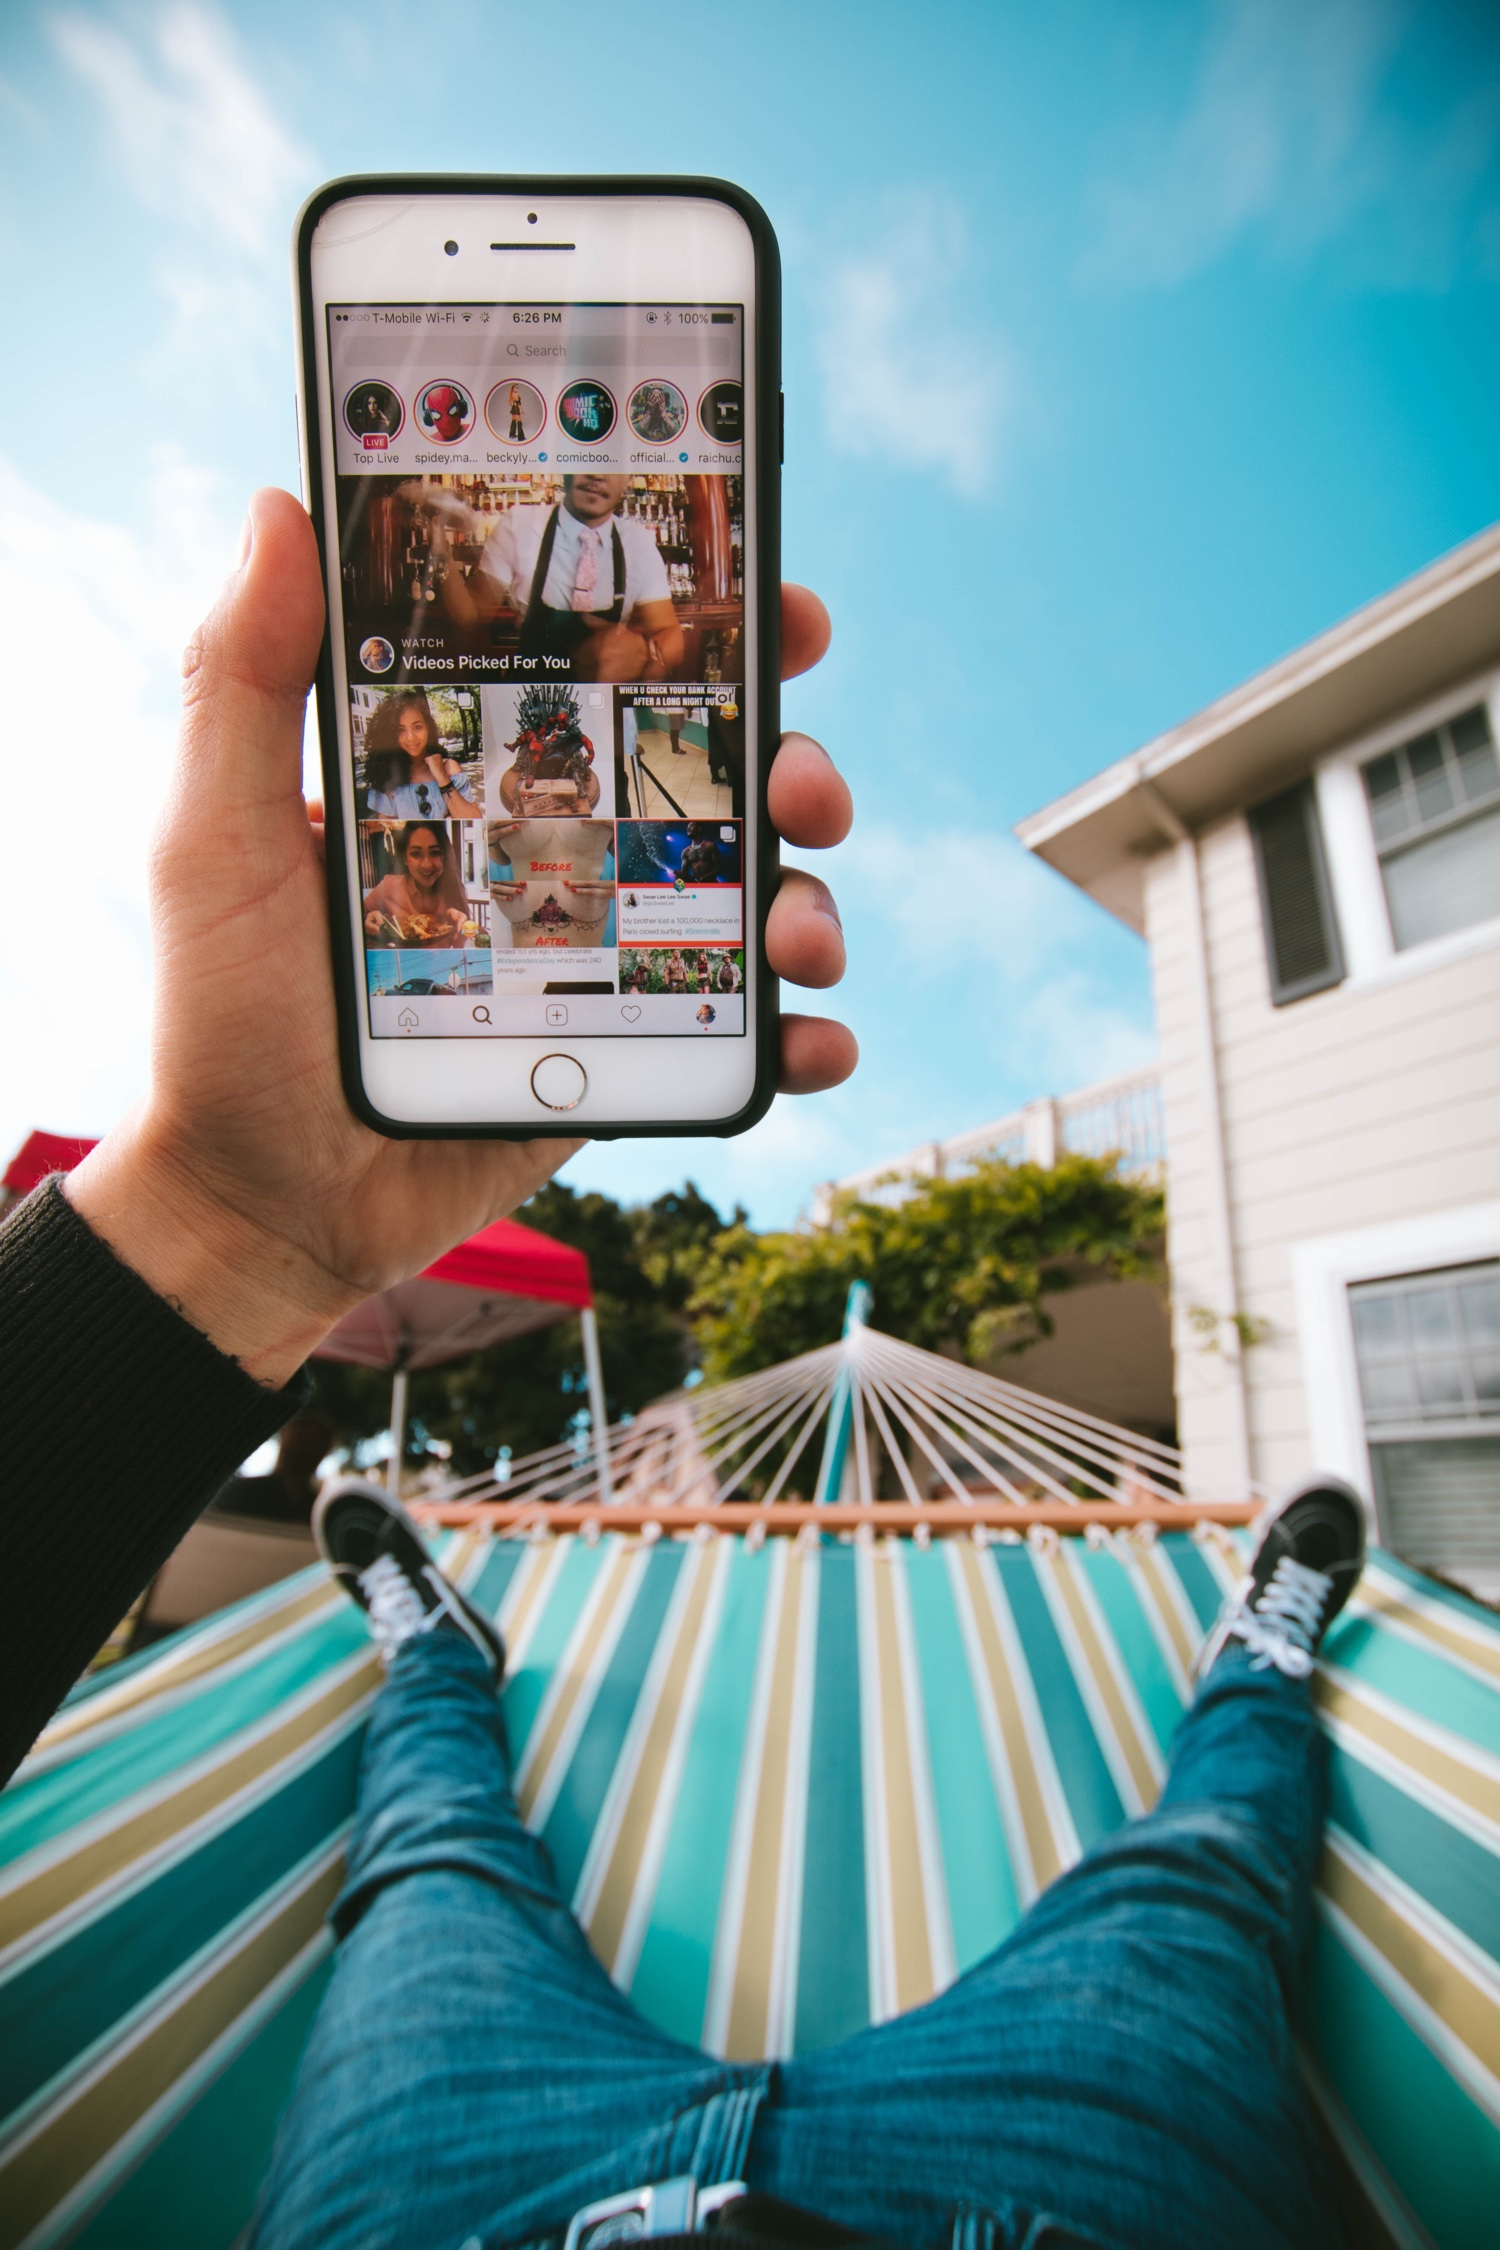 Pre-summer body image triggers in this social media ad age | Brownble